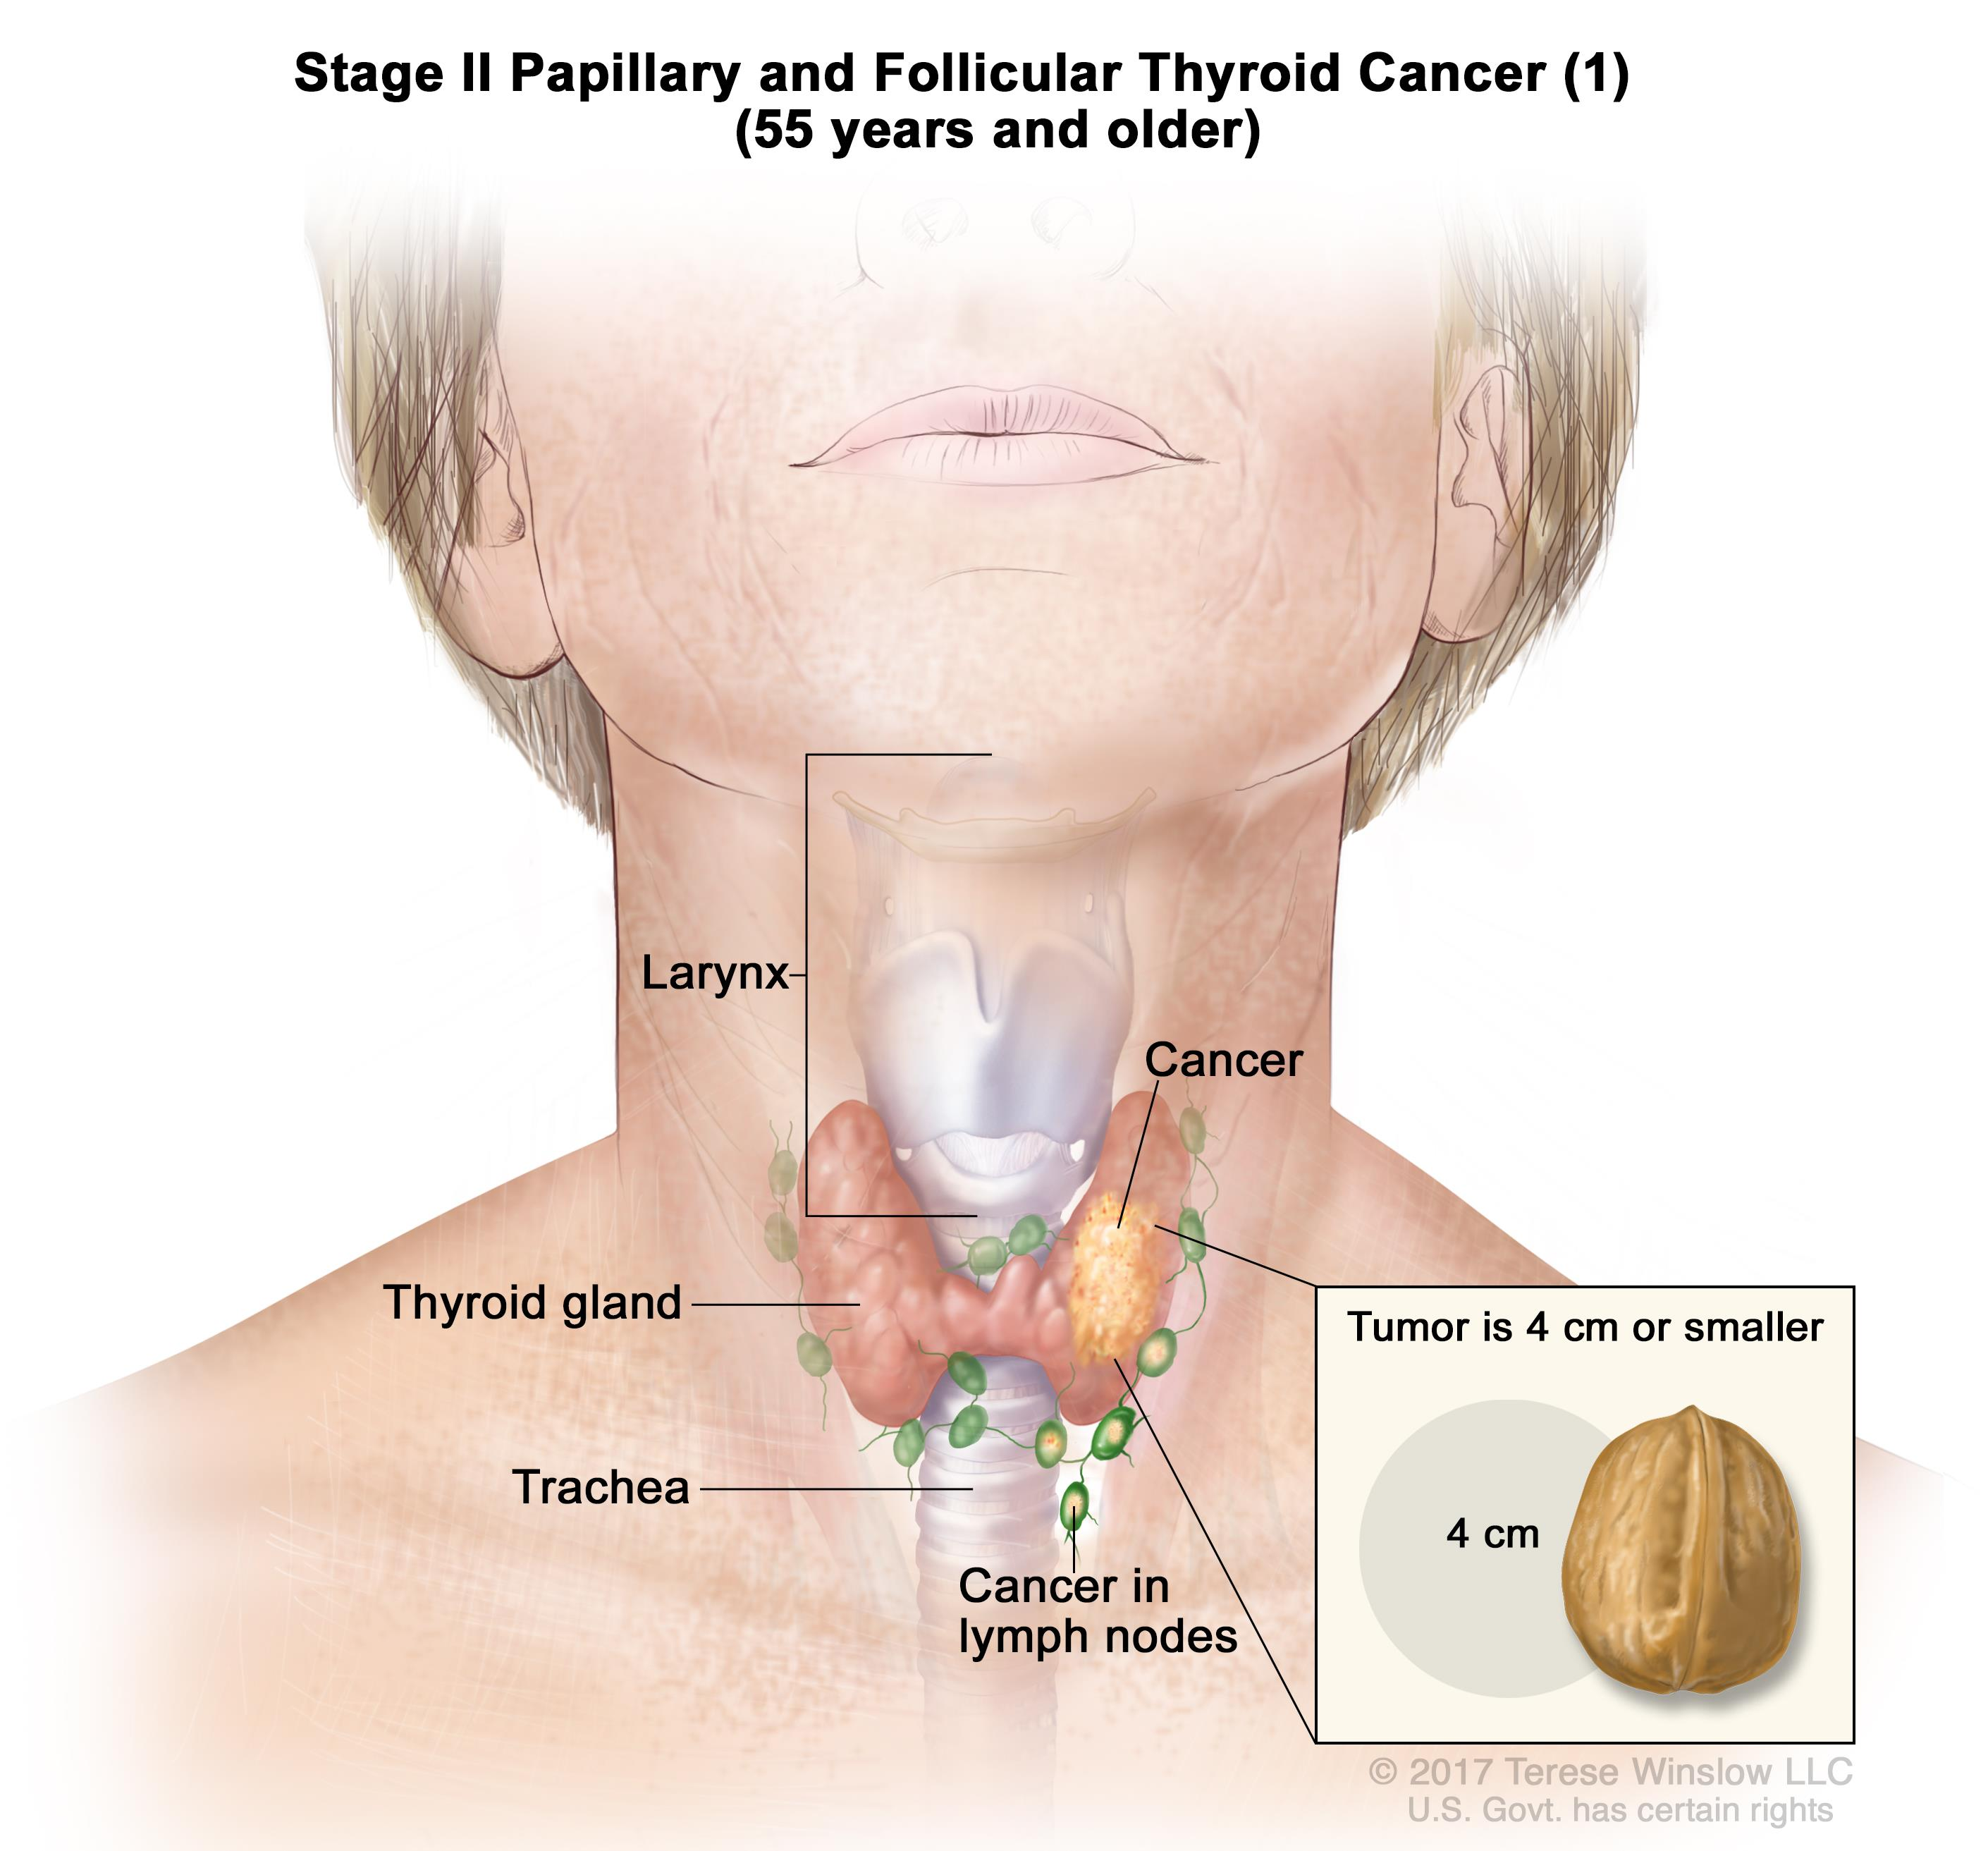 FAMILIAL SYNDROMIC PAPILLARY THYROID CARCINOMA - REPORT OF TWO CASES